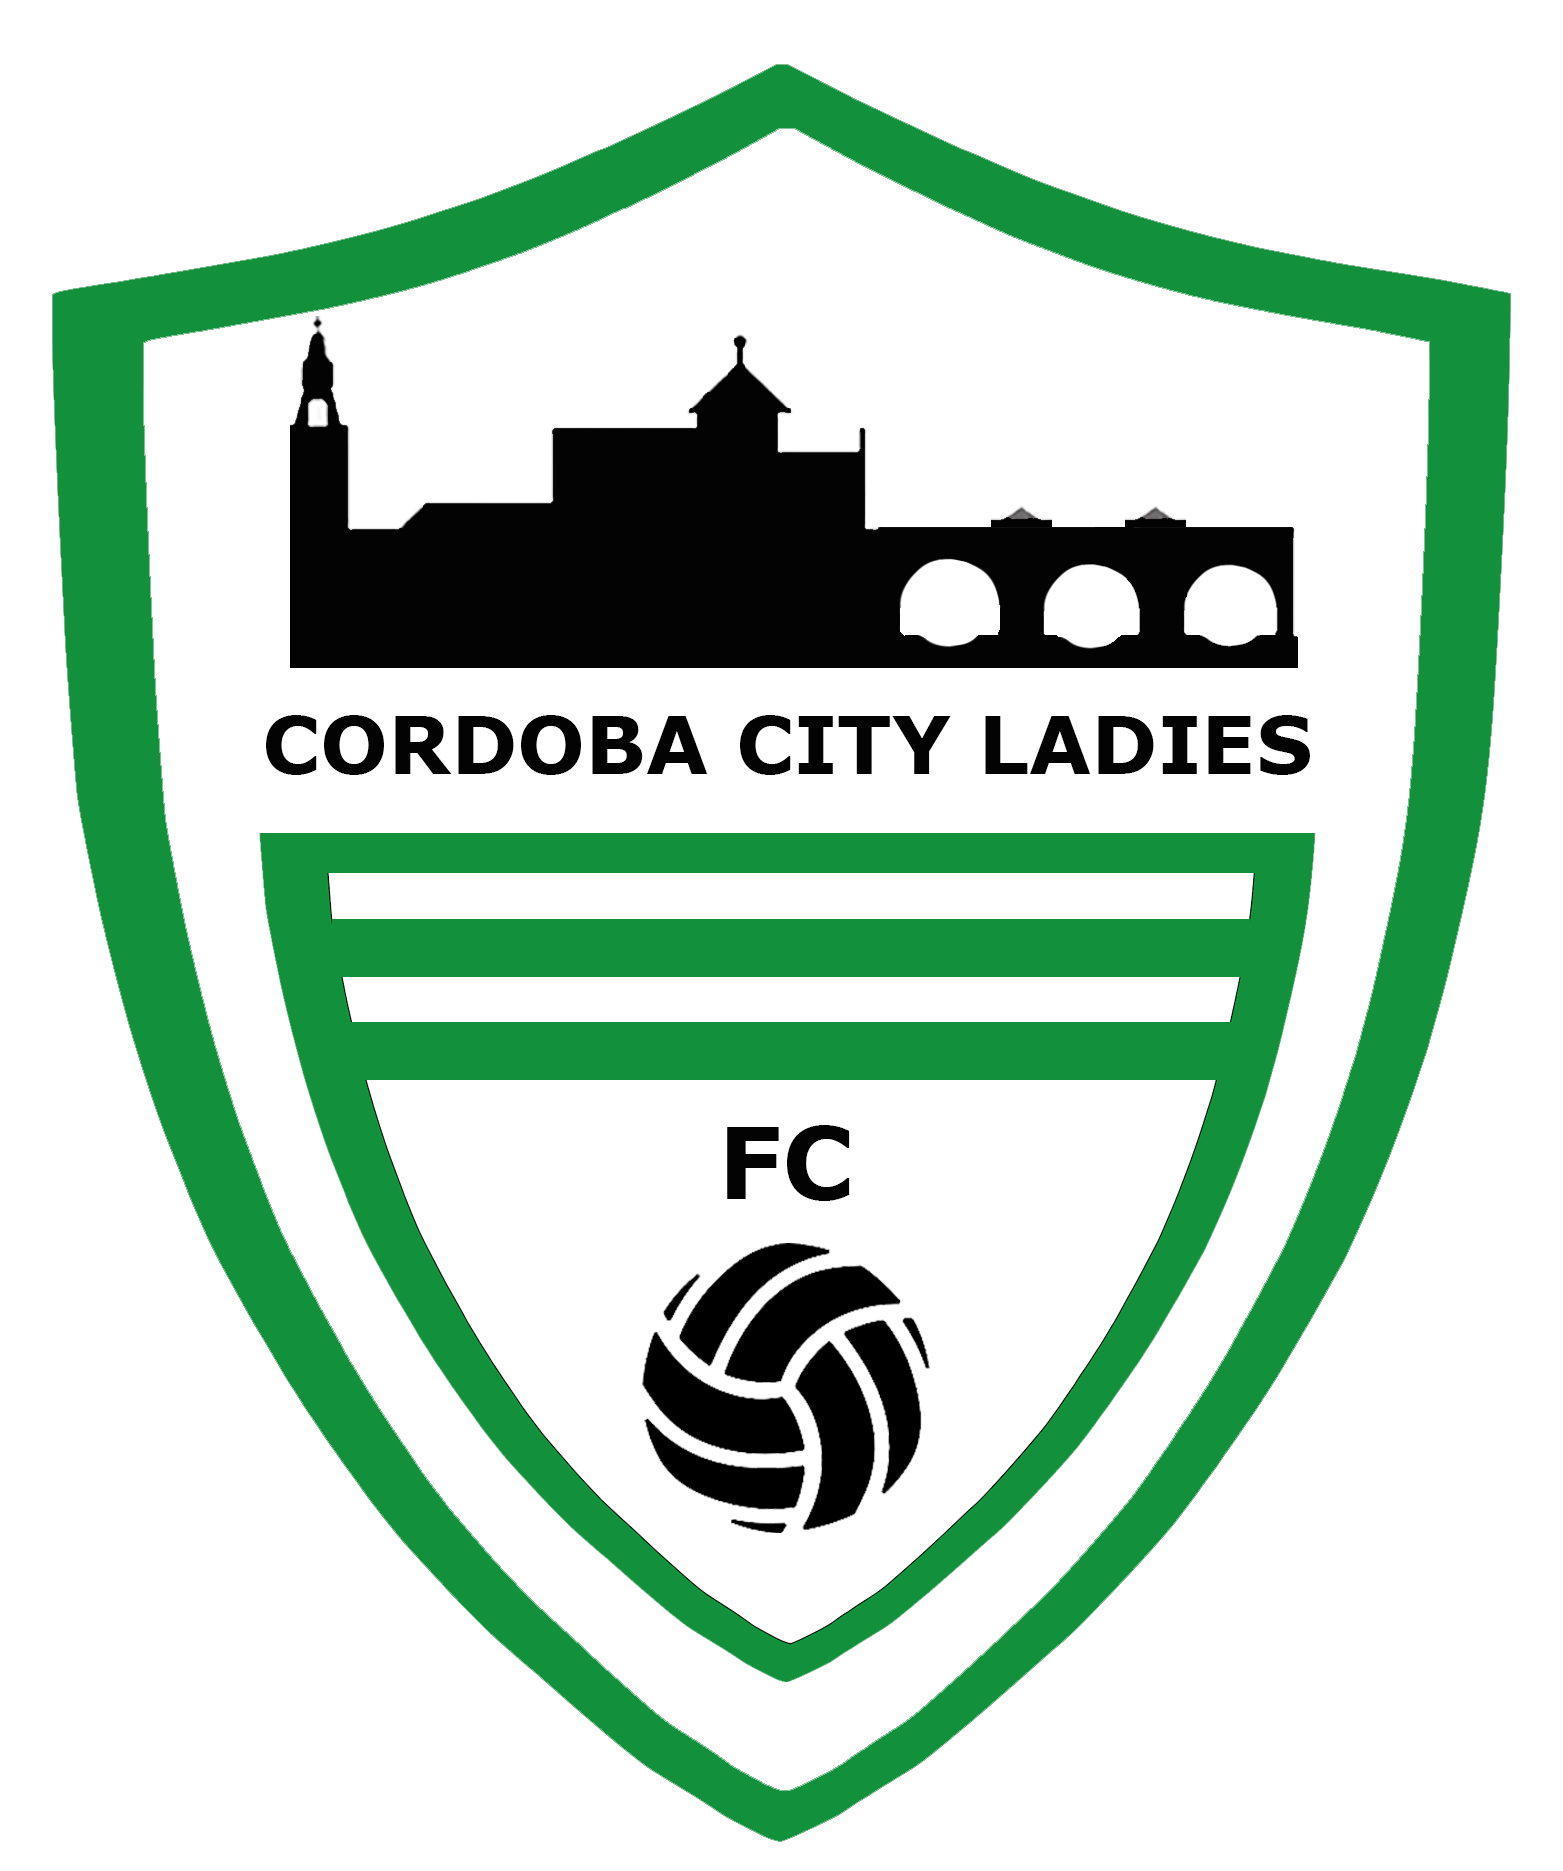 CITY LADIES FC